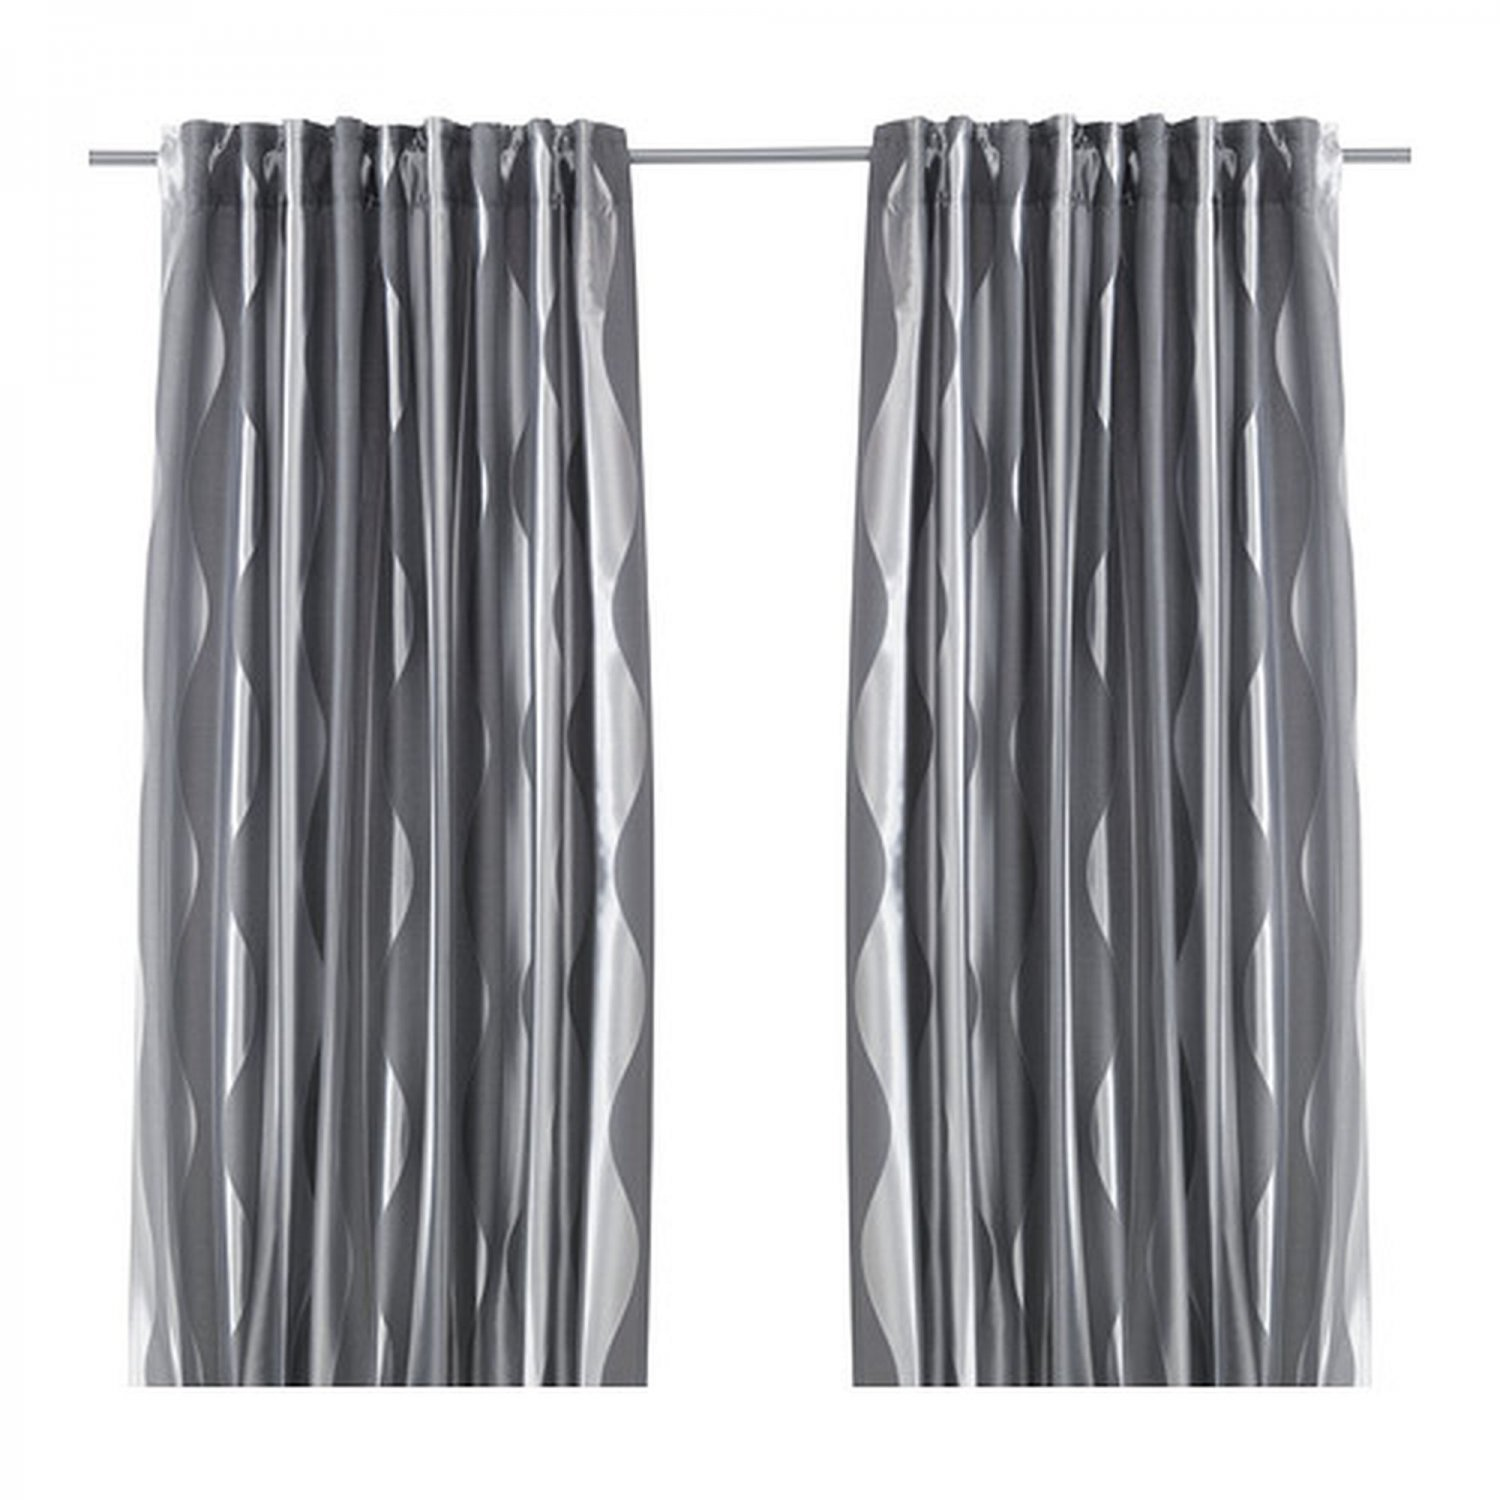 Ikea Perth Curtains Ikea Murruta Curtains Drapes 2 Panels Gray 98